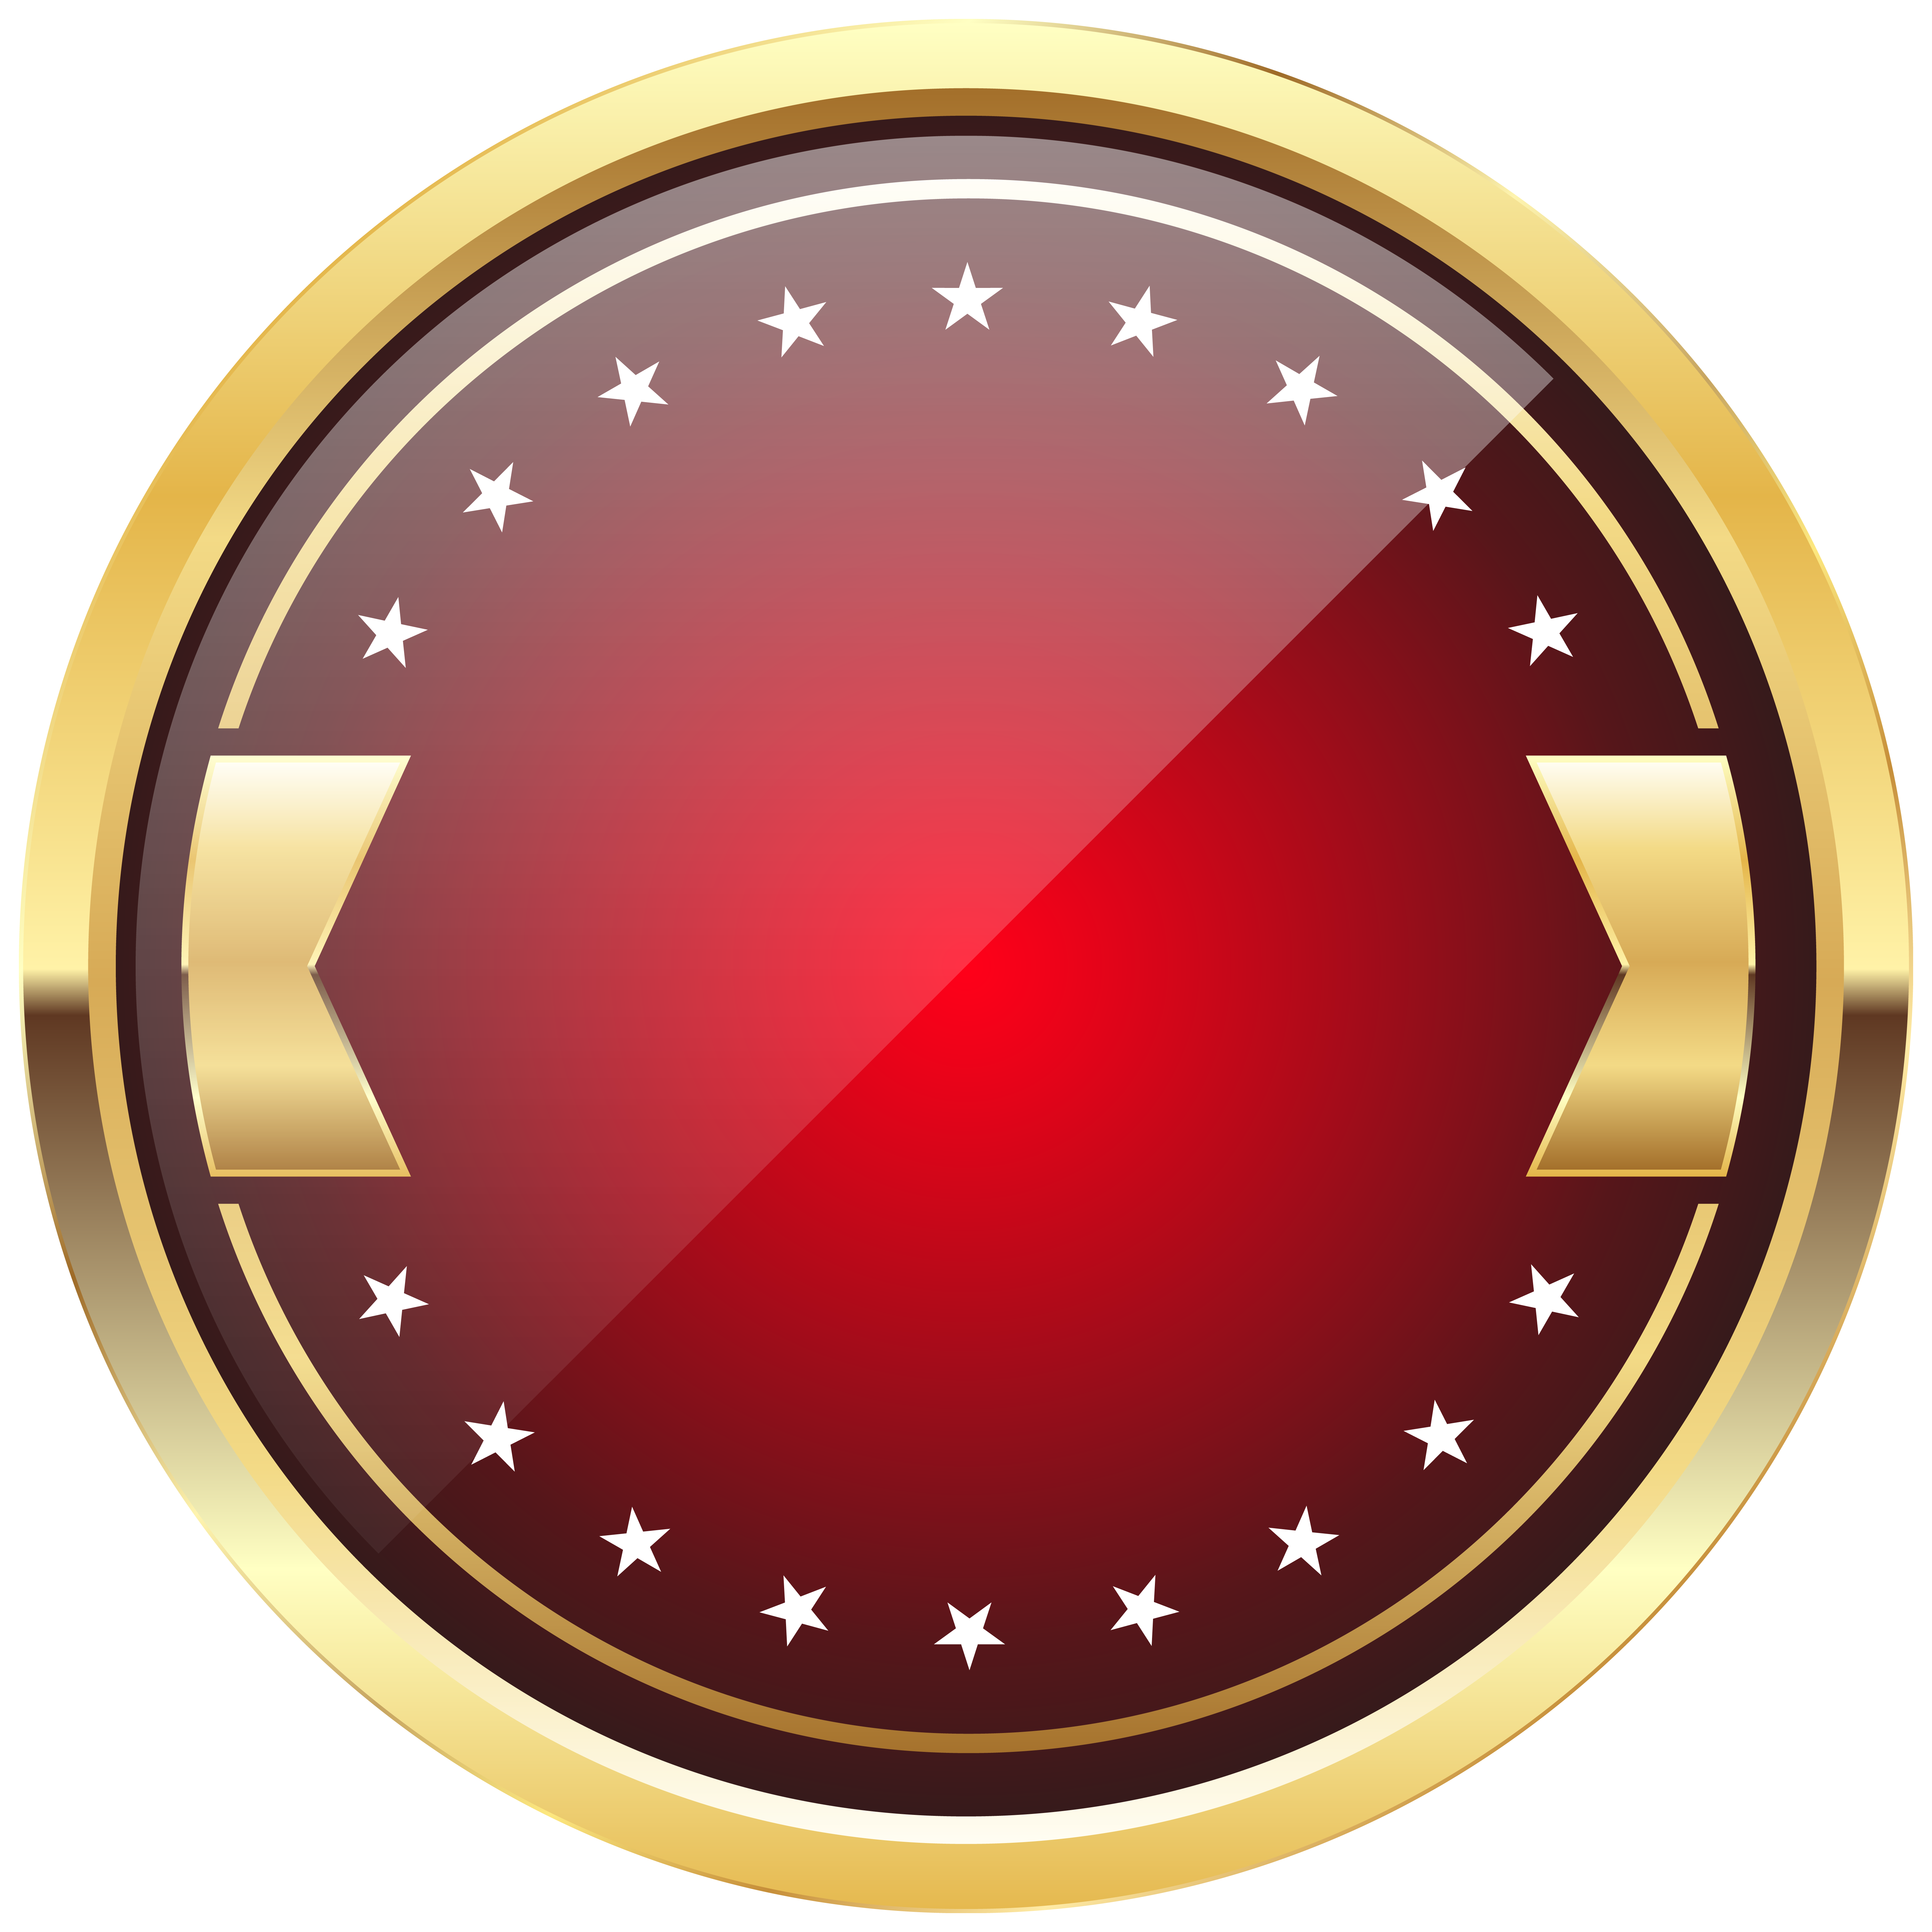 Red badge png. Template clip art image